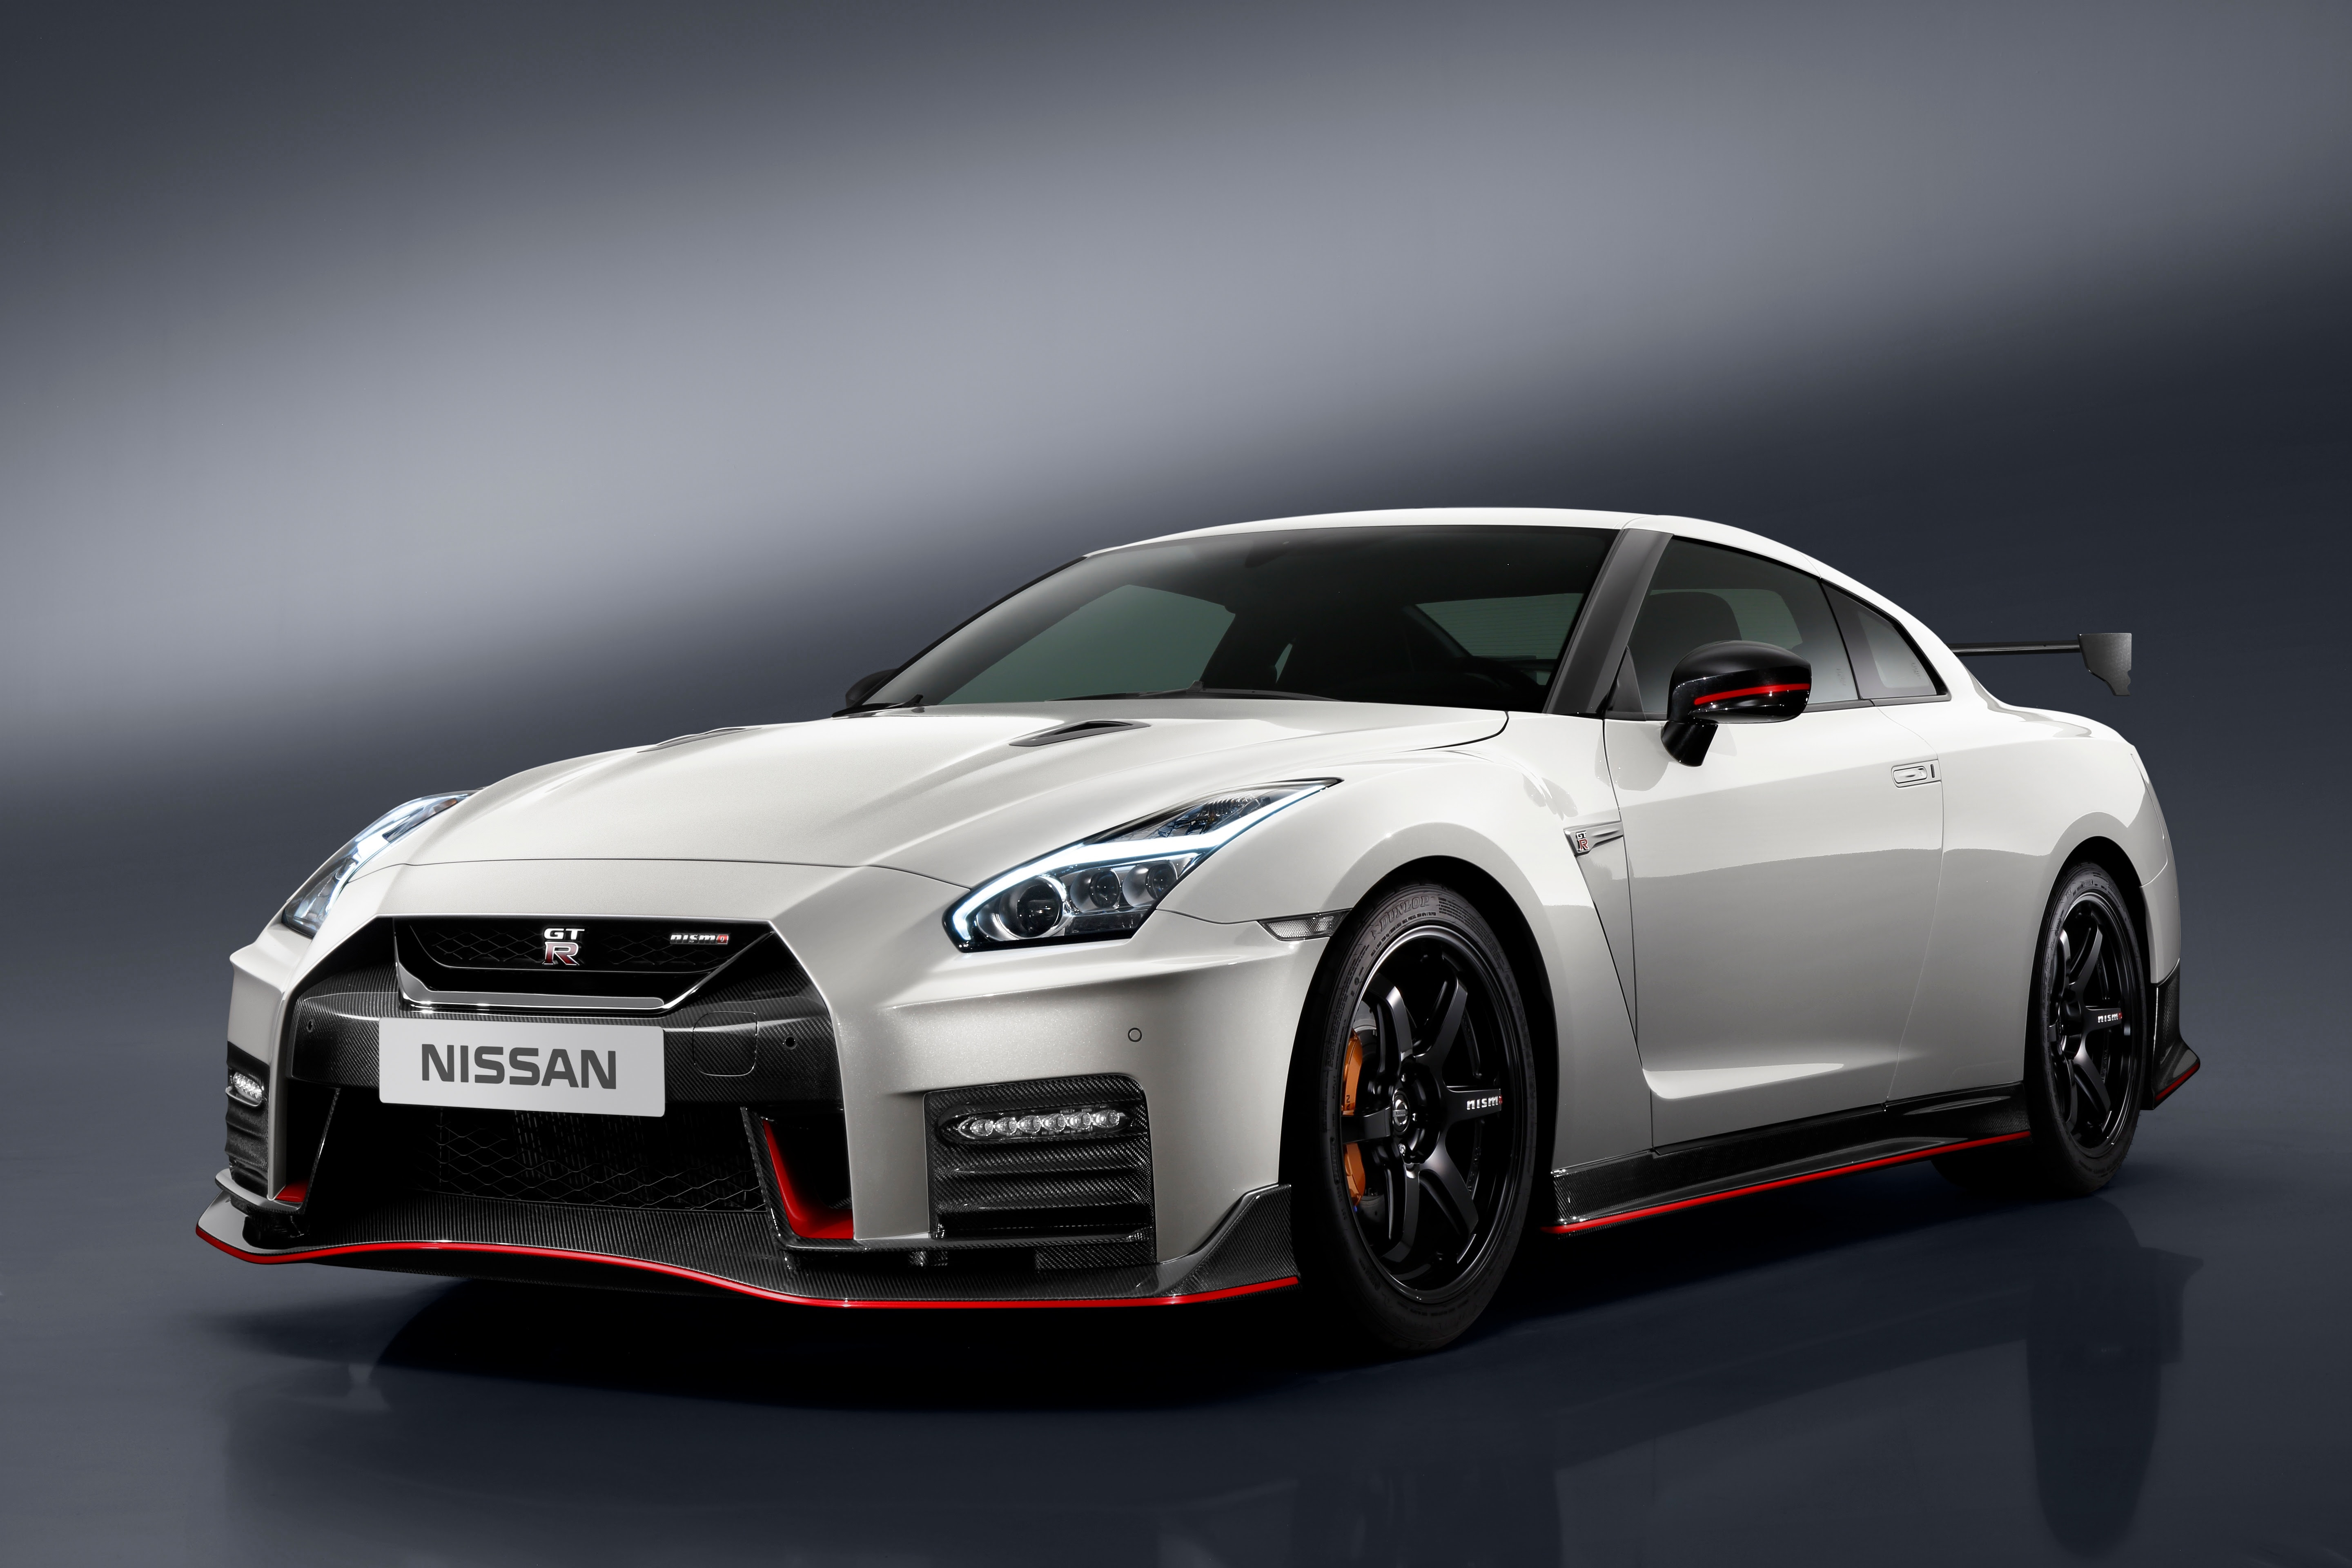 2017 Nissan GTR NISMO: Pricing Announced at U.S. Debut